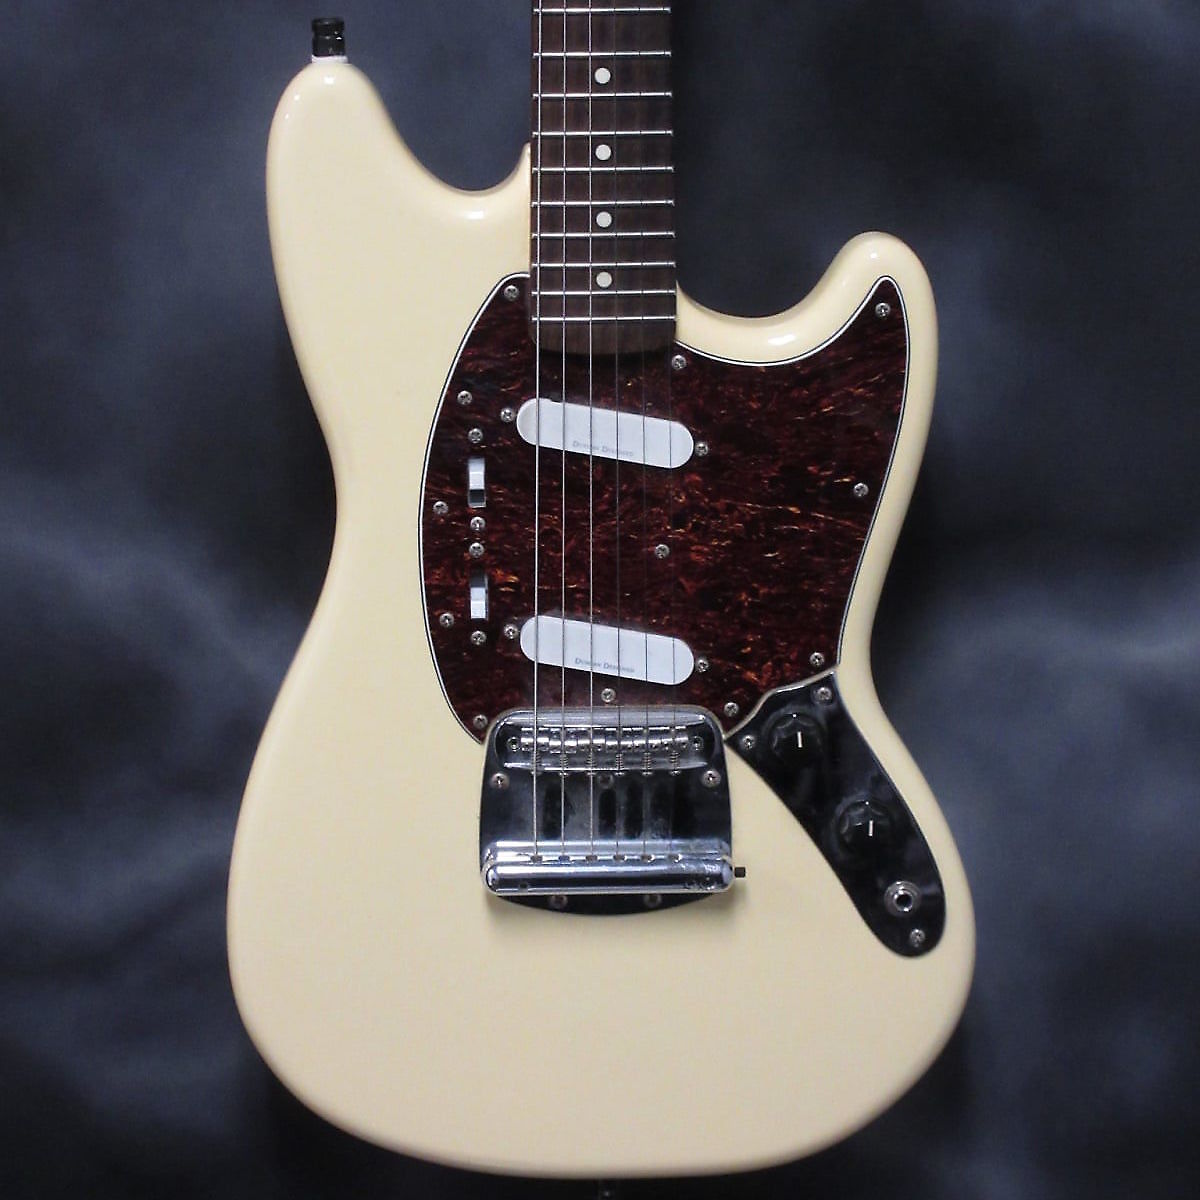 squier vintage modified mustang electric guitar vintage white reverb. Black Bedroom Furniture Sets. Home Design Ideas